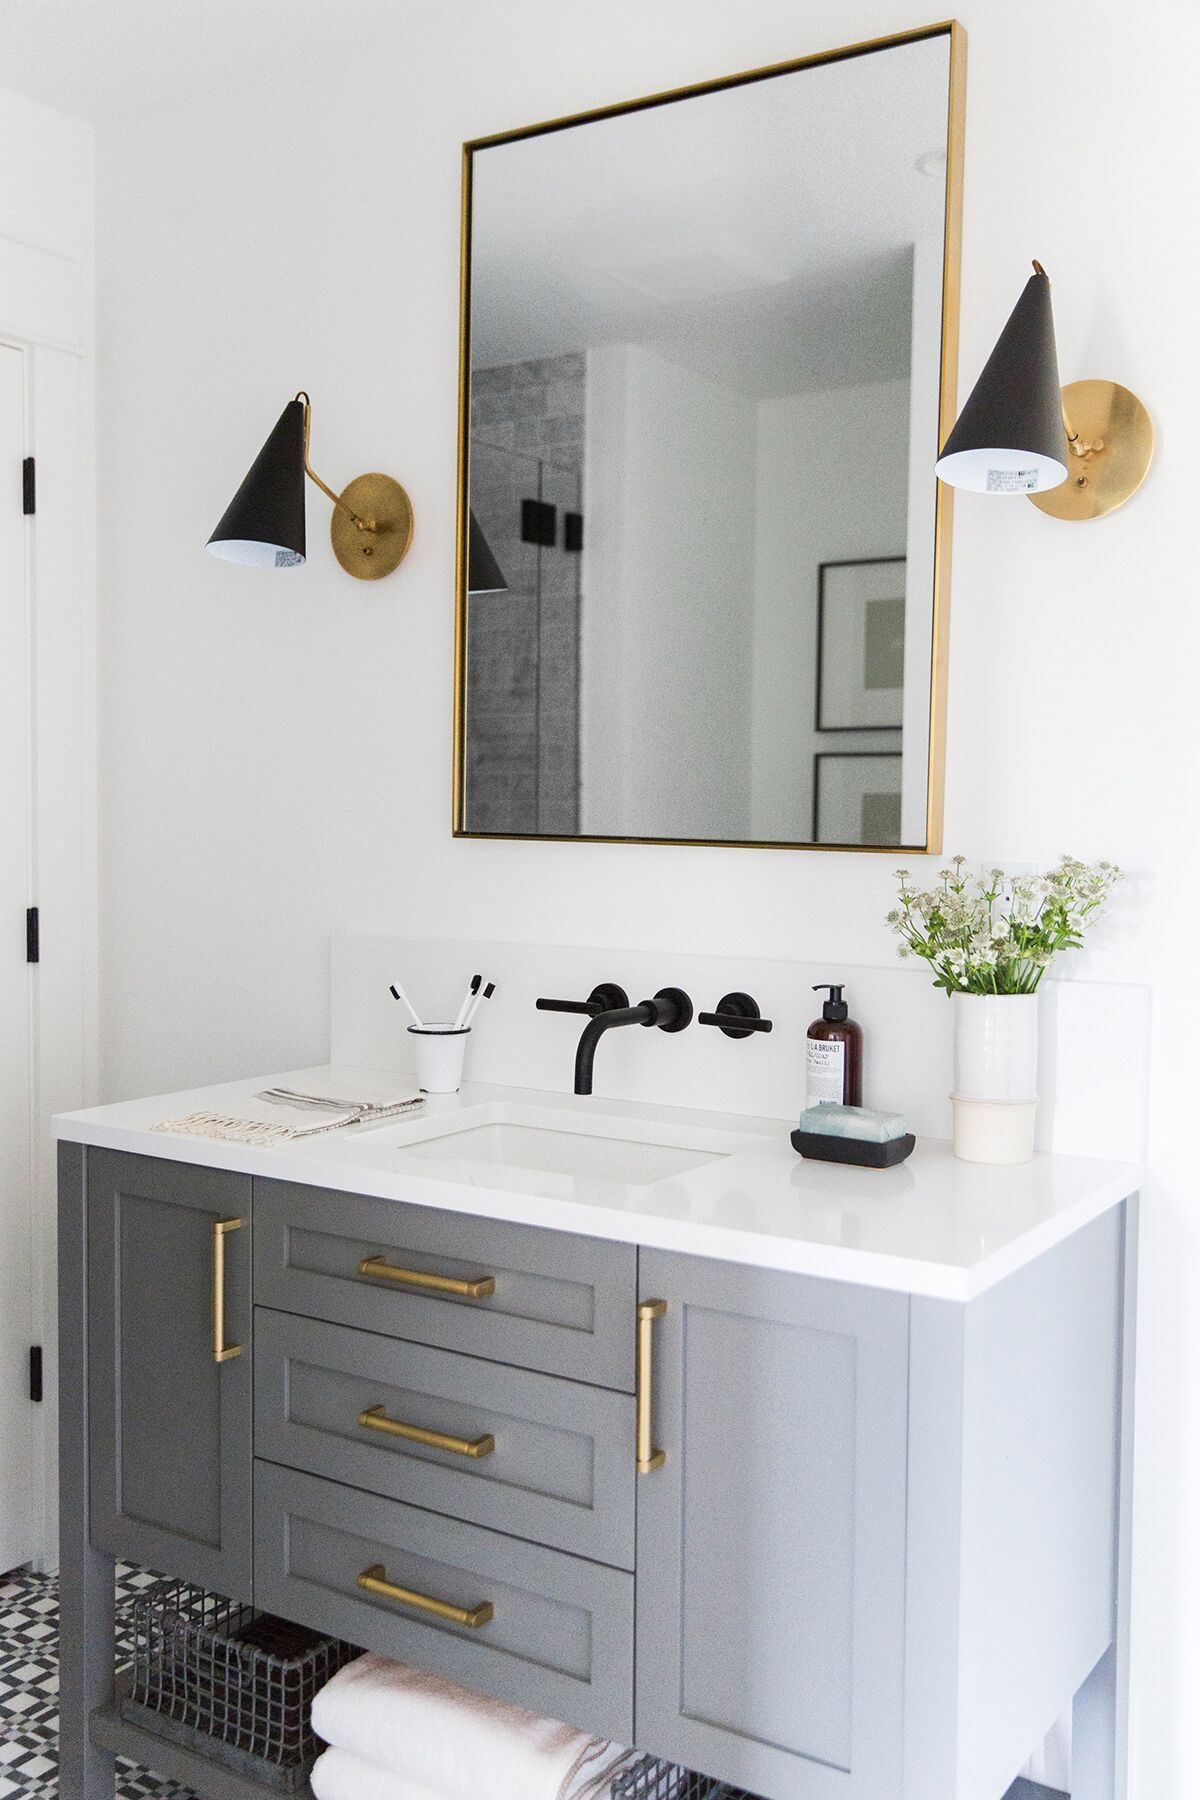 16++ Guest room bathroom ideas ideas